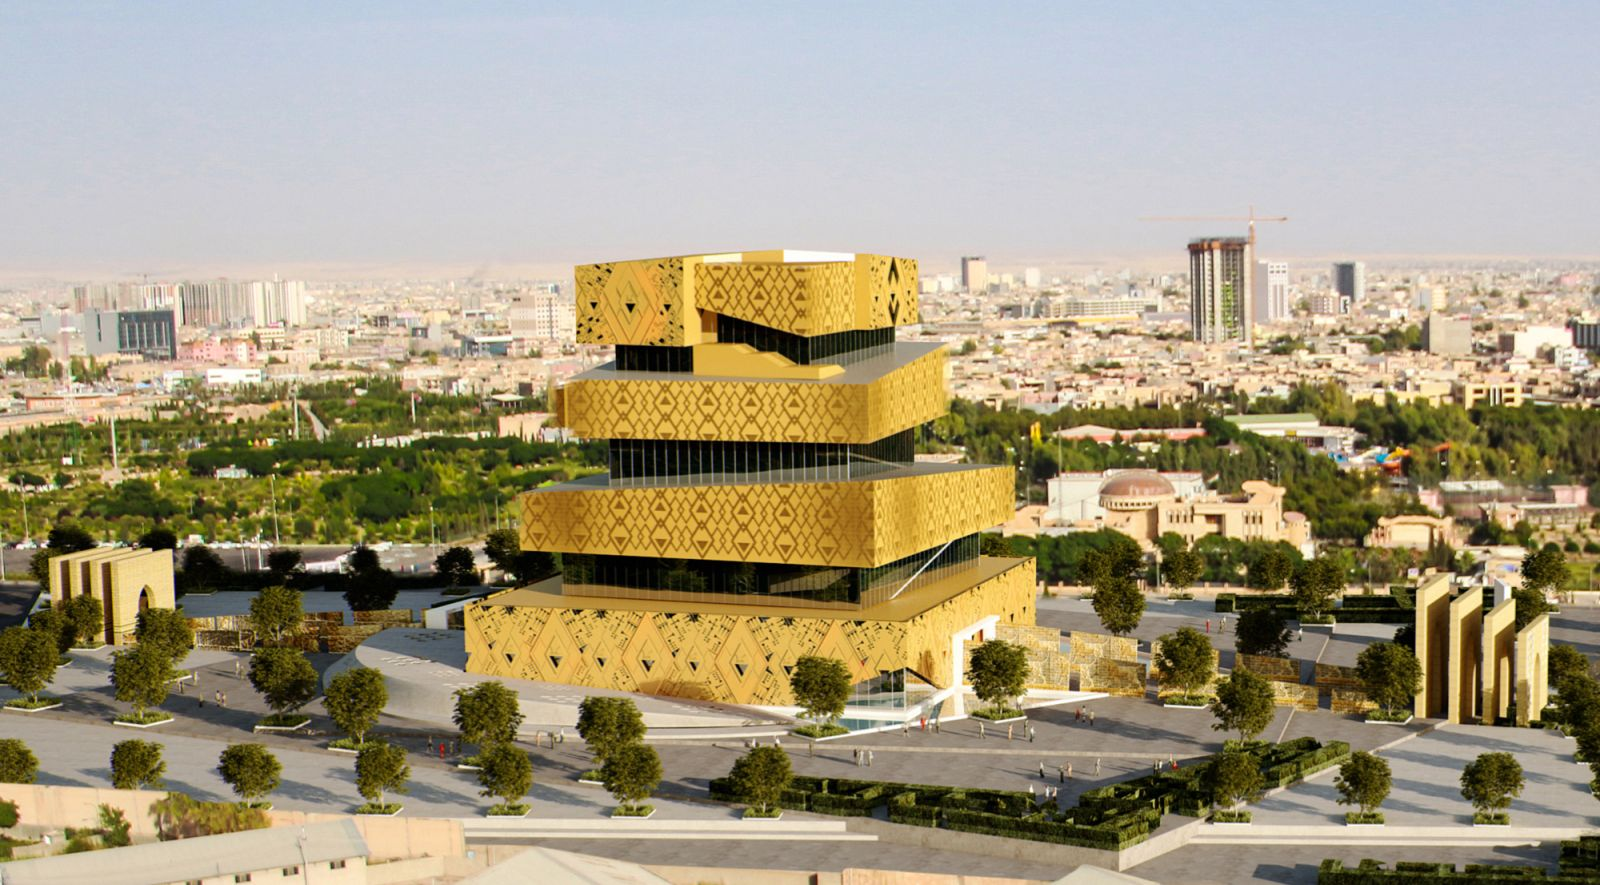 mesopotamian museum by rawand abdulla a as architecture